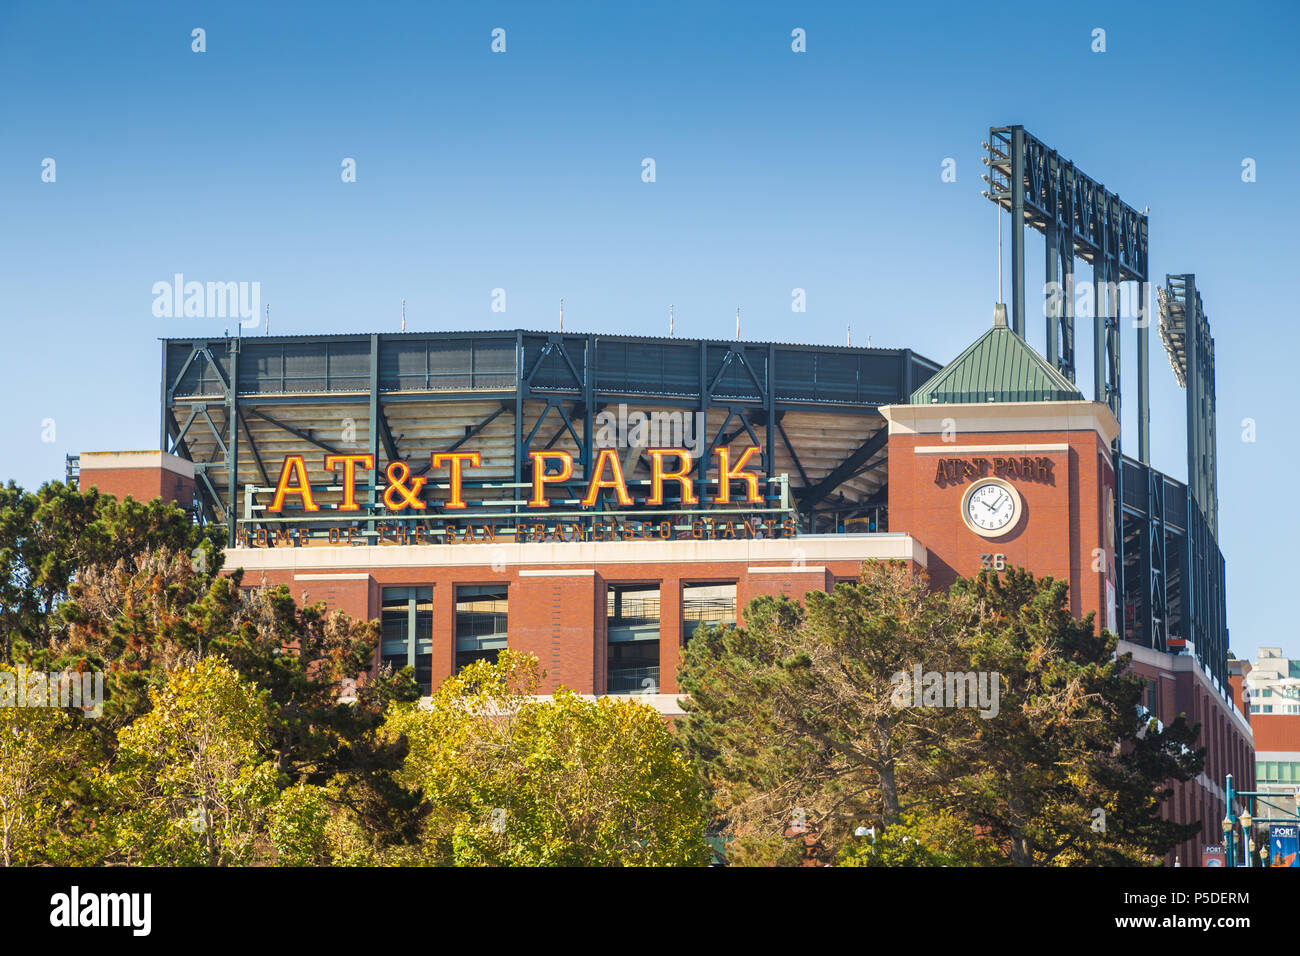 Historic AT&T Park baseball park, home of the San Francisco Giants professional baseball franchise, on a beautiful sunny day with blue sky, California - Stock Image